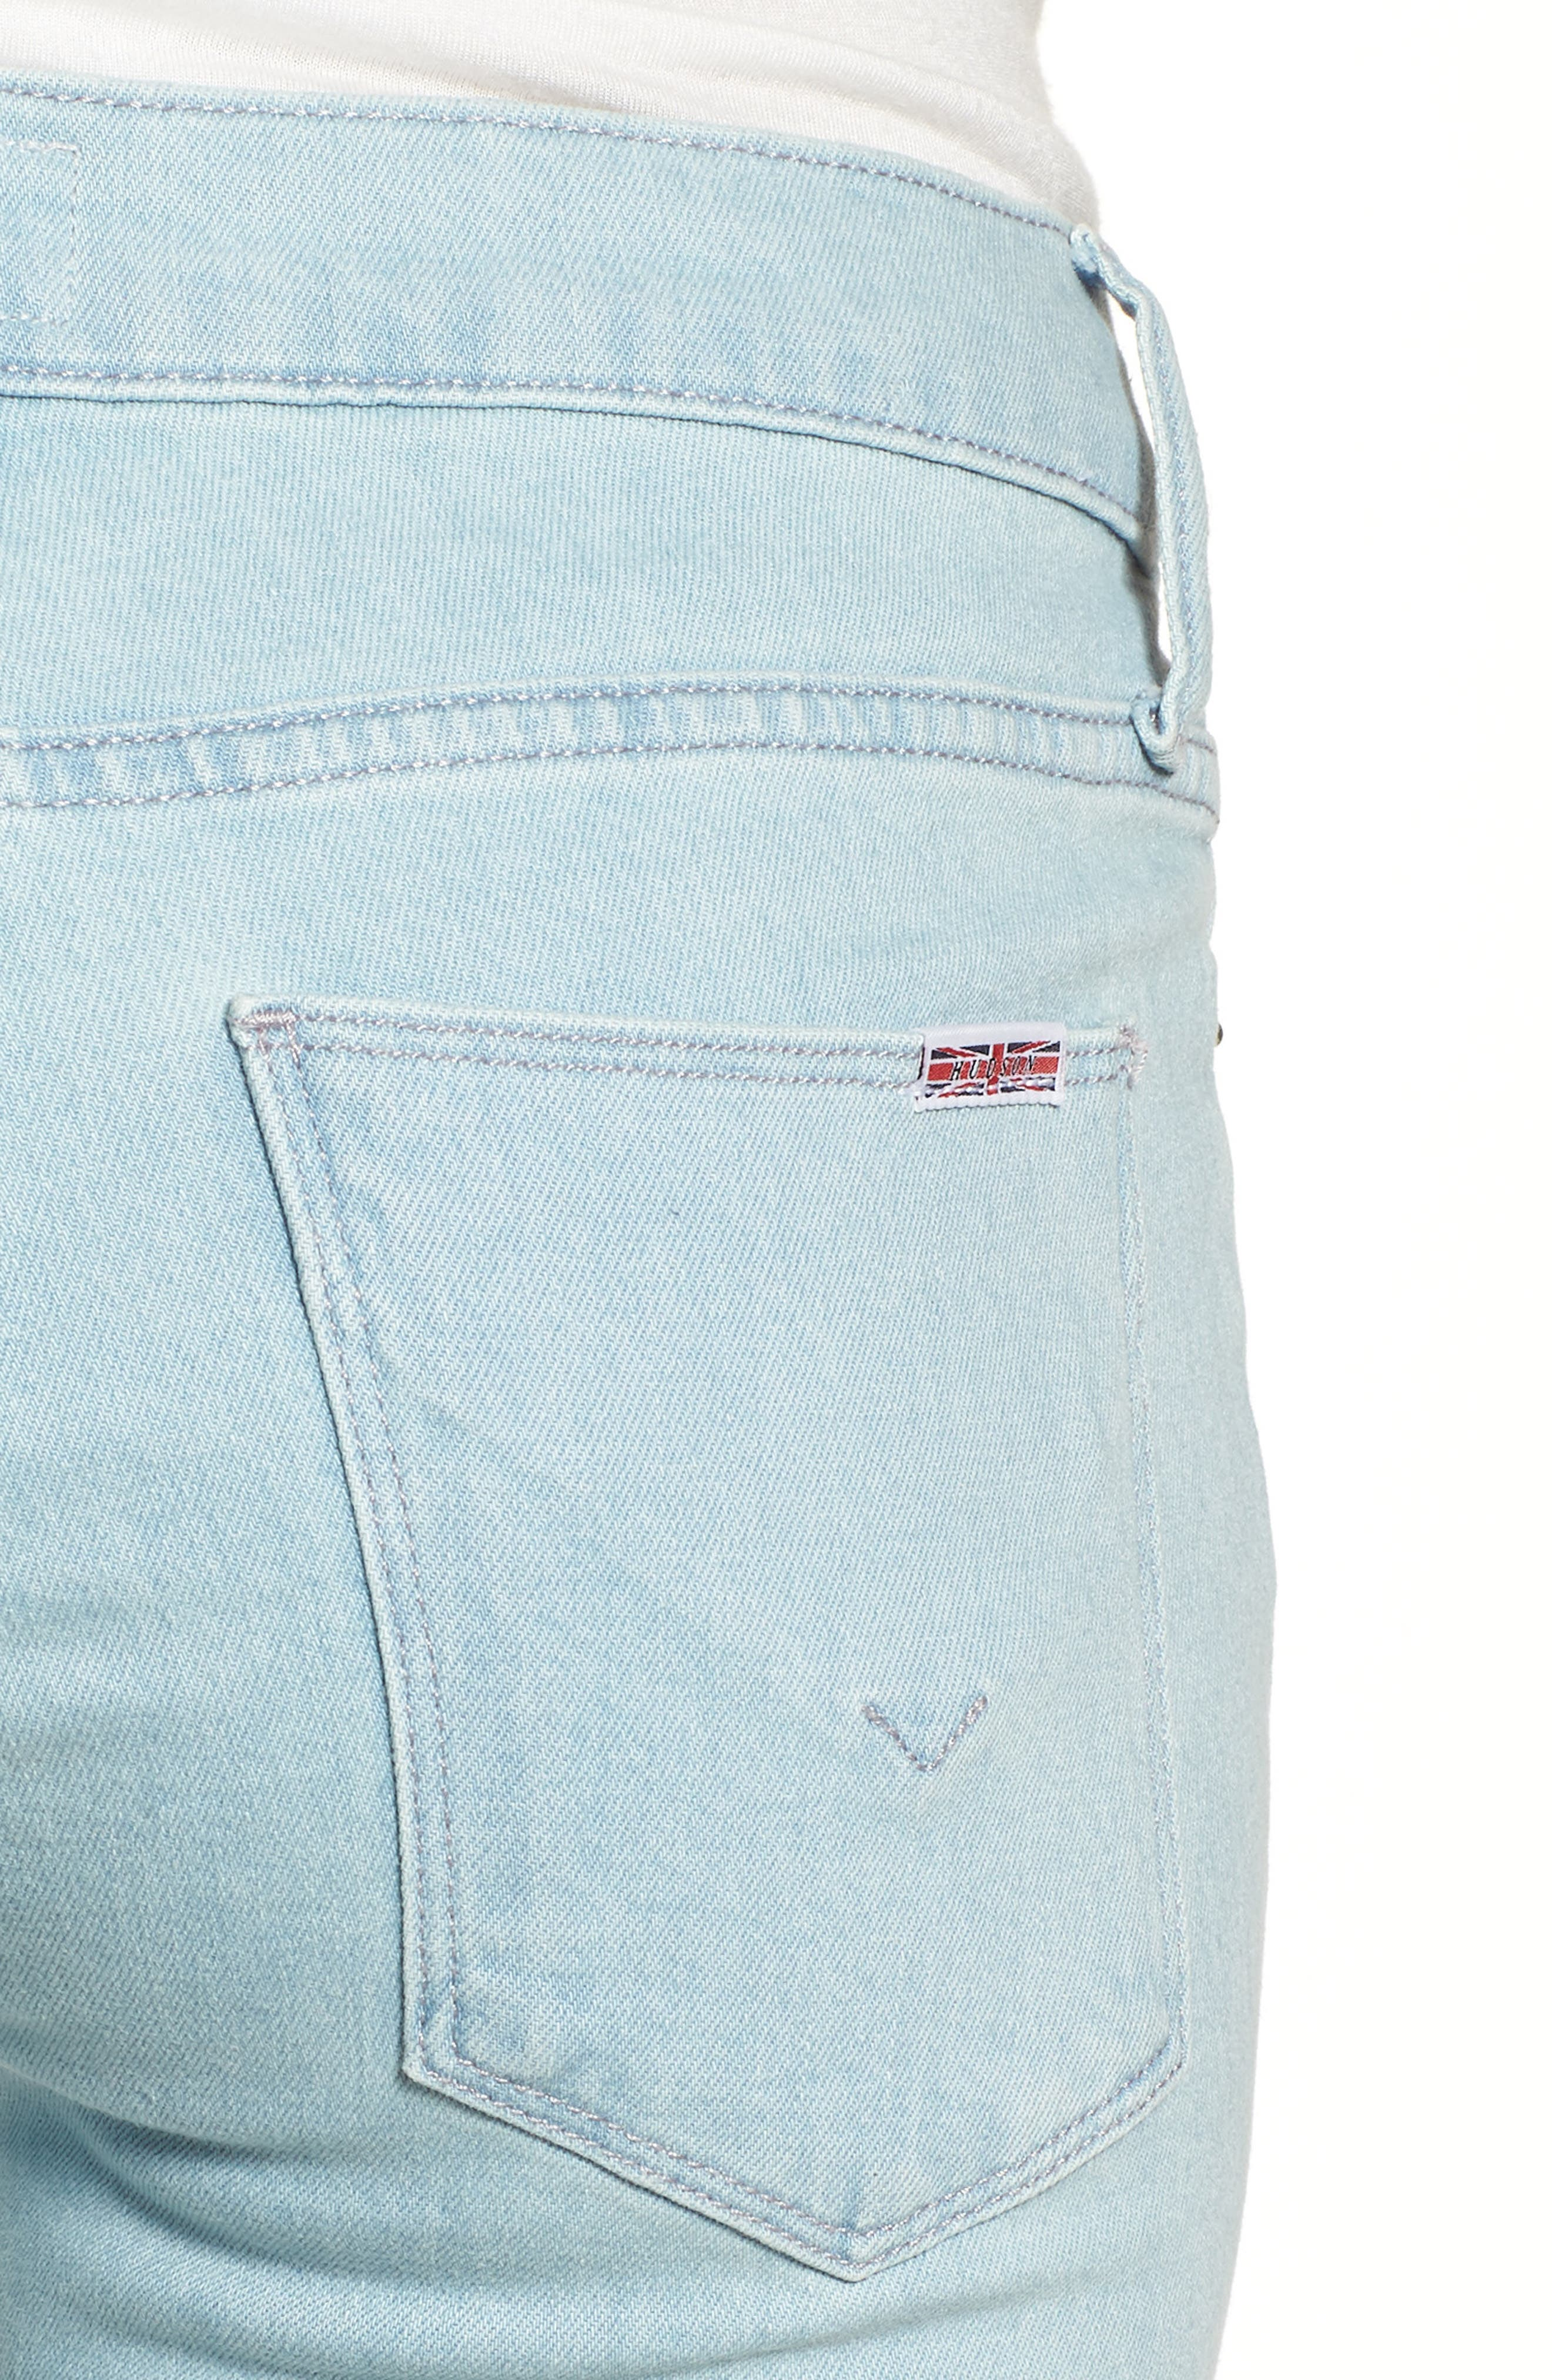 Tally Crop Skinny Jeans,                             Alternate thumbnail 4, color,                             Sage Extract